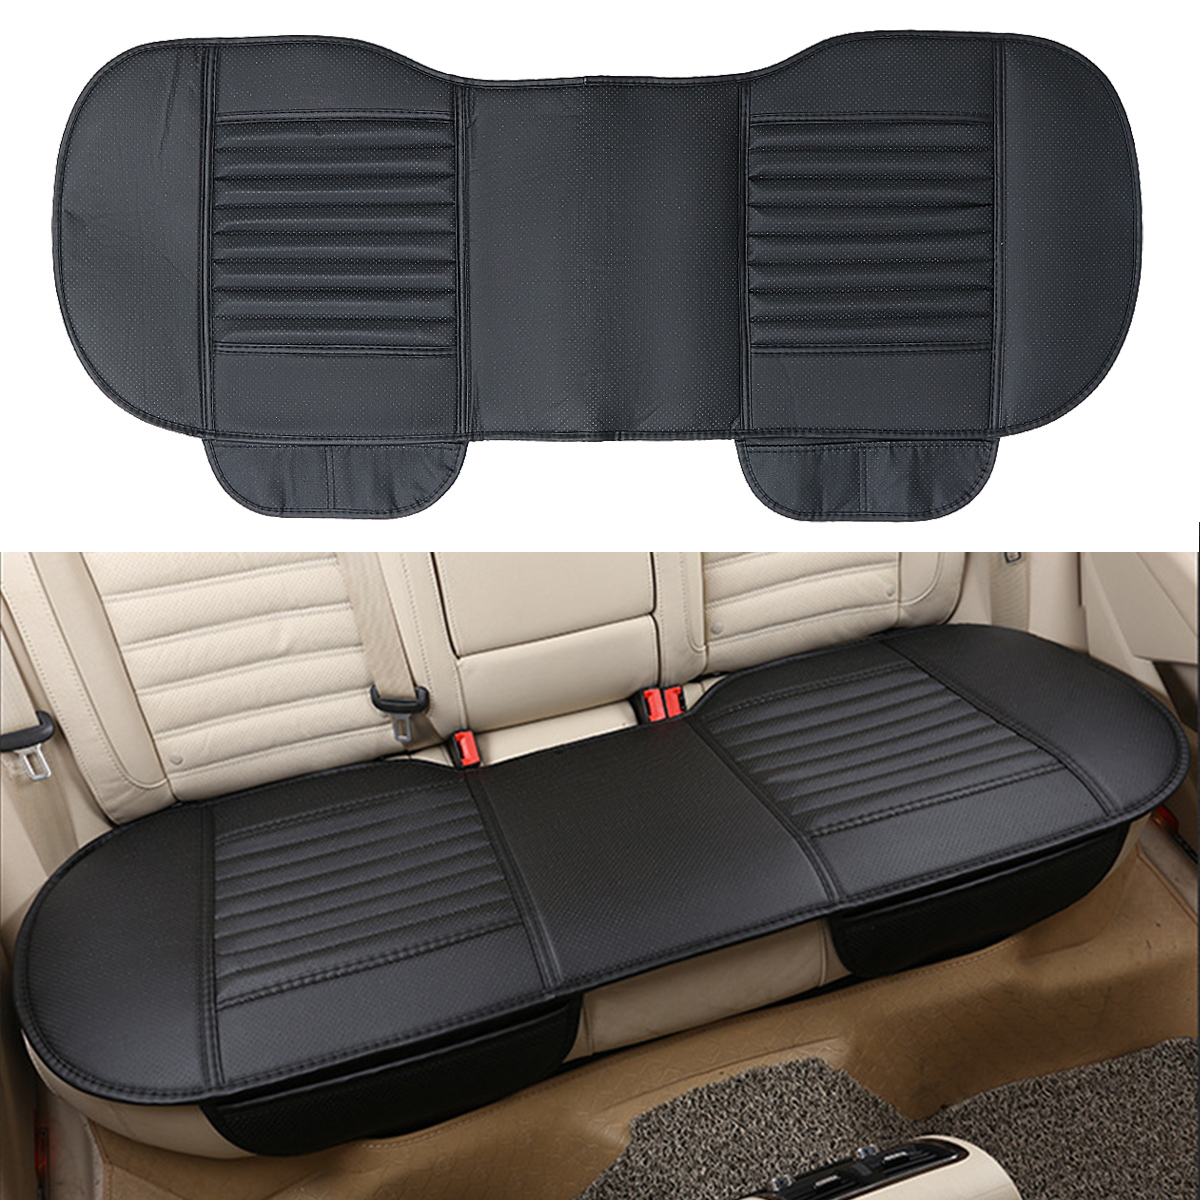 Car Back Seat PU Leather Charcoal Waterproof Auto Pad Seat Cushion Mat With Pocket Cover Protector Car Interior Accessories